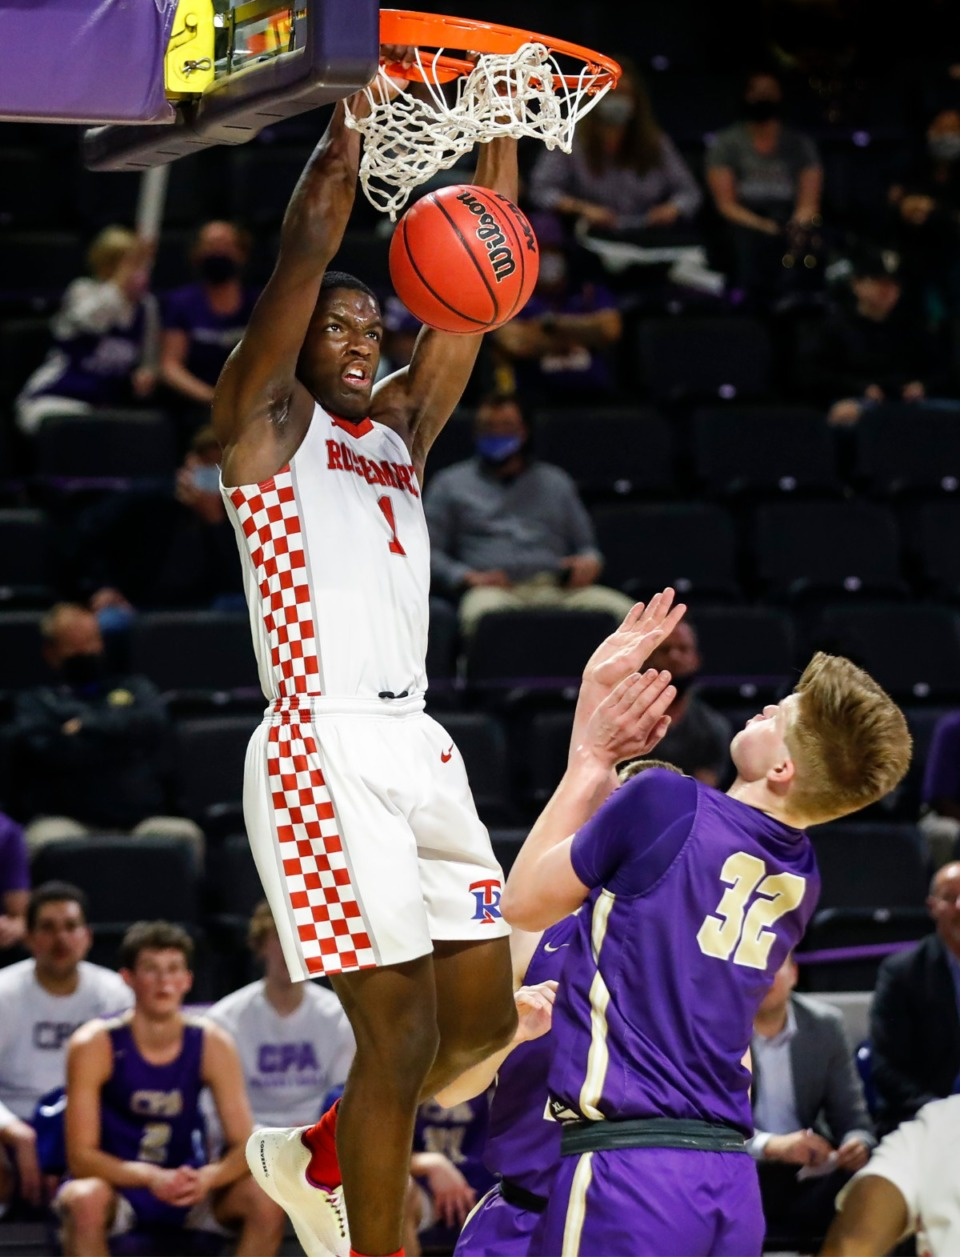 <strong>Tipton-Rosemark guard Tyler Byrd (left) dunks over Christ Presbyterian&rsquo;s Braeden Moore (right) during the Division II Class A semifinals game on Thursday, March 4, 2021, in Cookeville.</strong> (Mark Weber/The Daily Memphian)